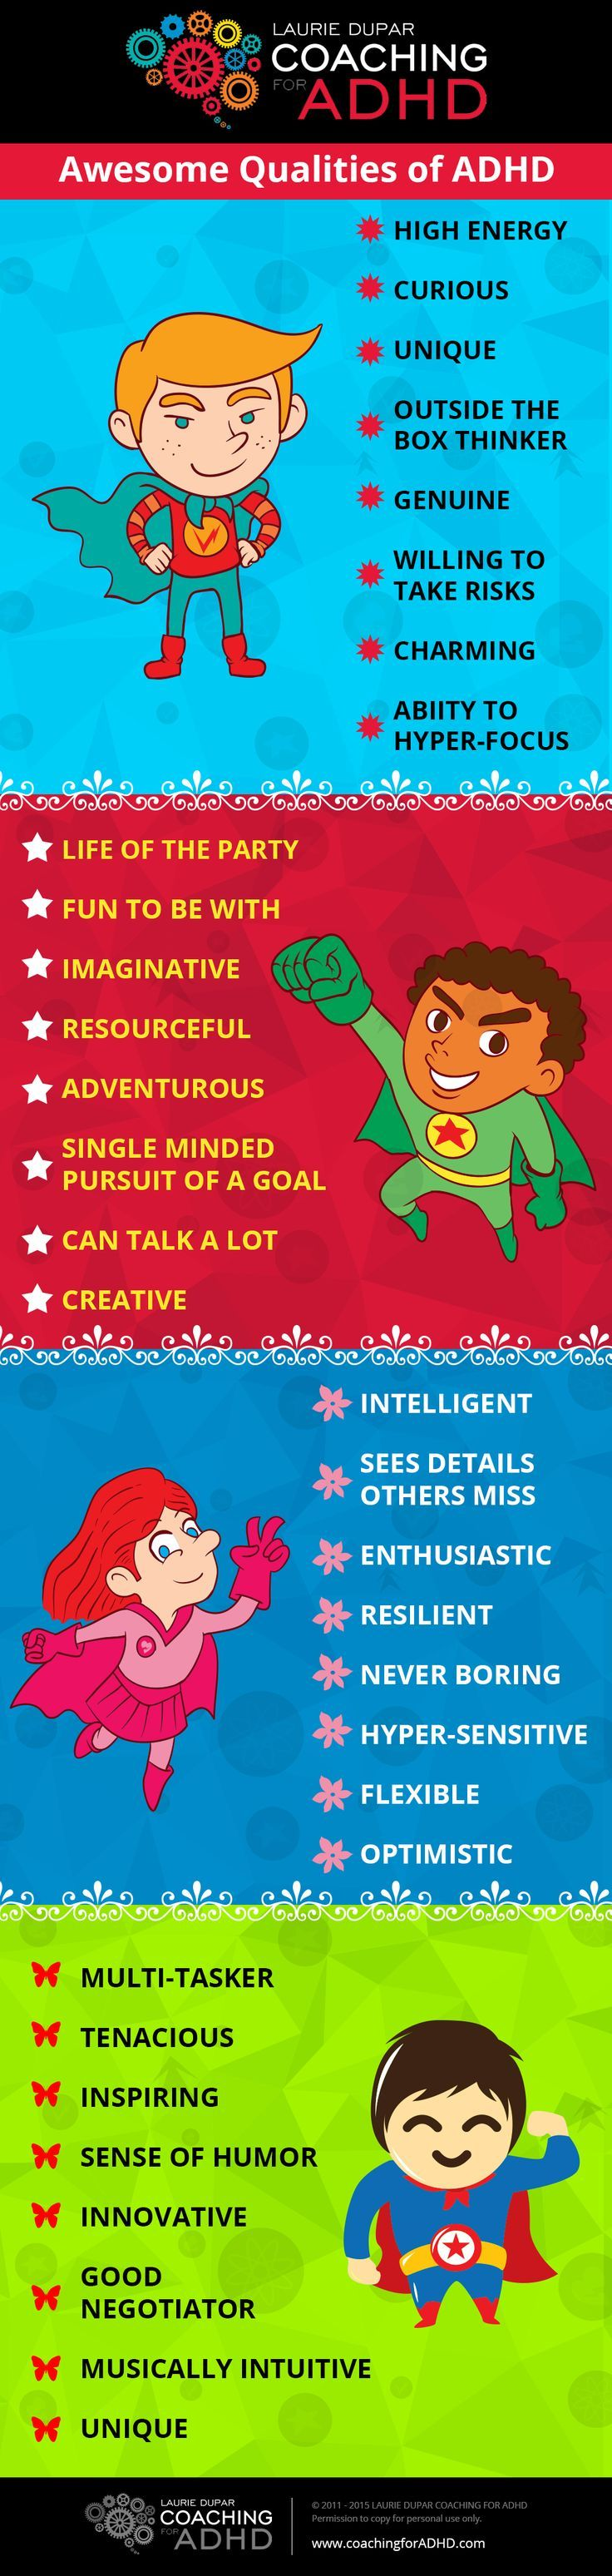 31 Awesome Qualities of ADHD...which one's do you have? | www.BrainHealth.Rocks                                                                                                                                                      More